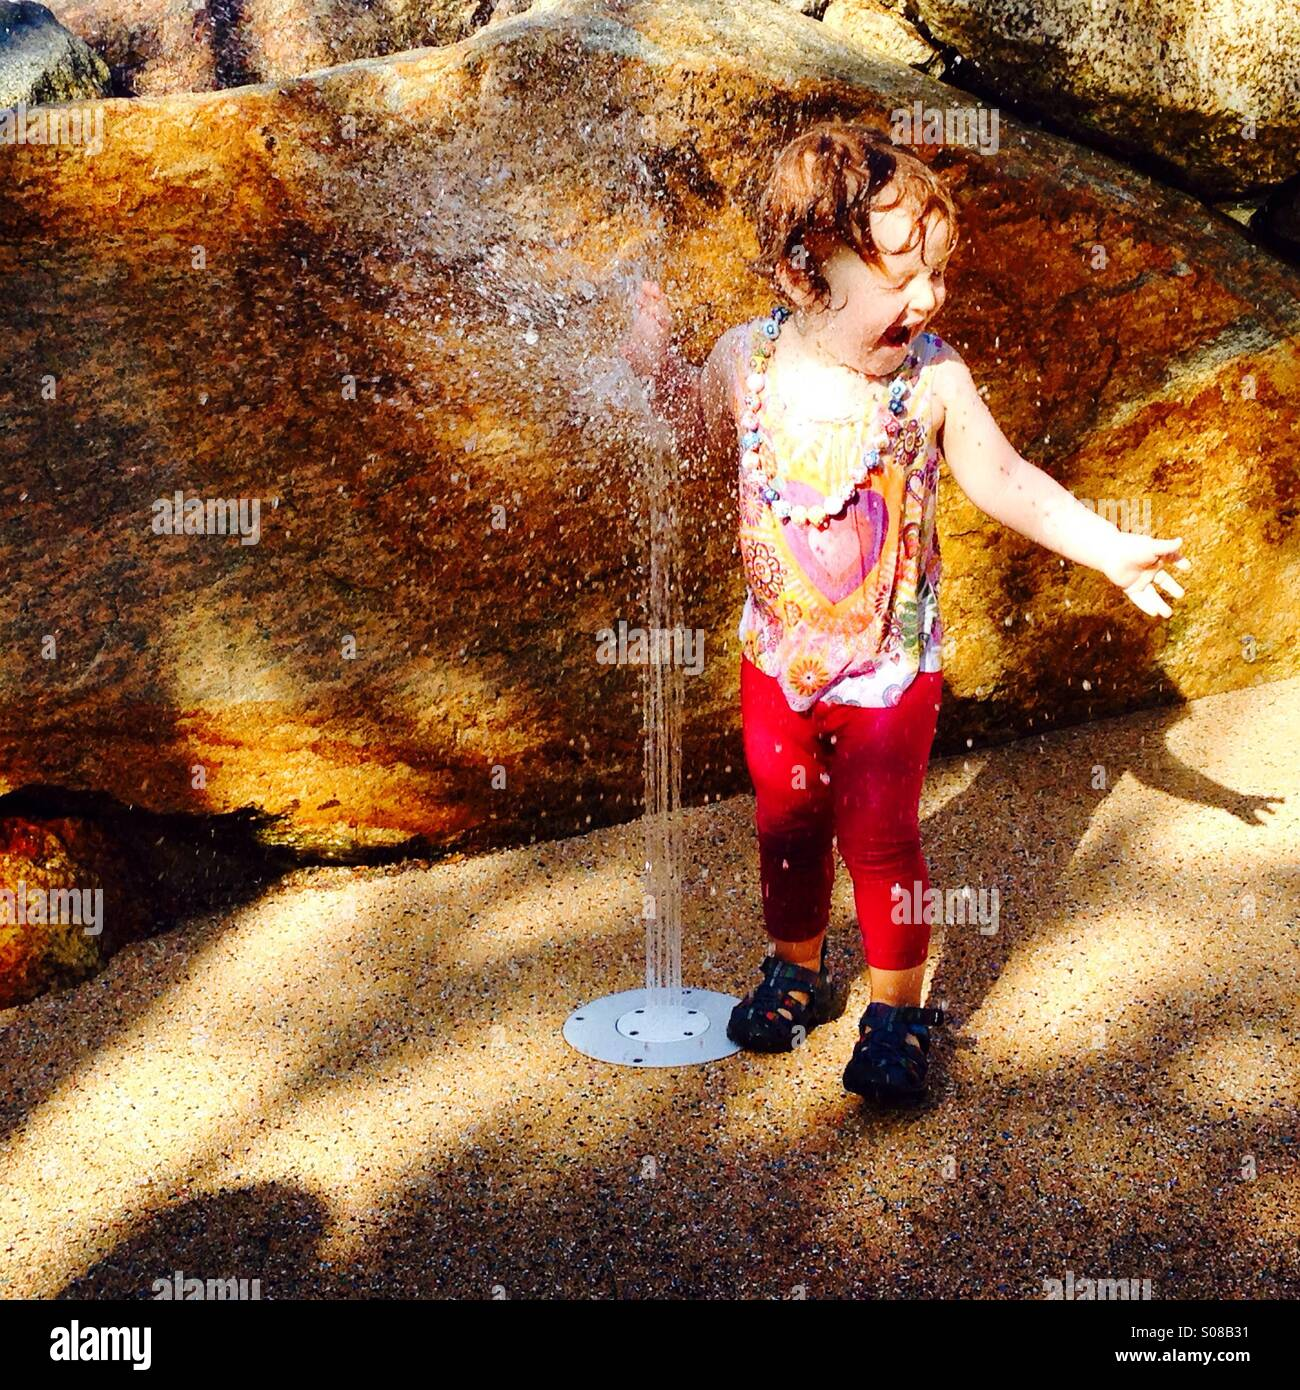 Little girl at splash pad - Stock Image